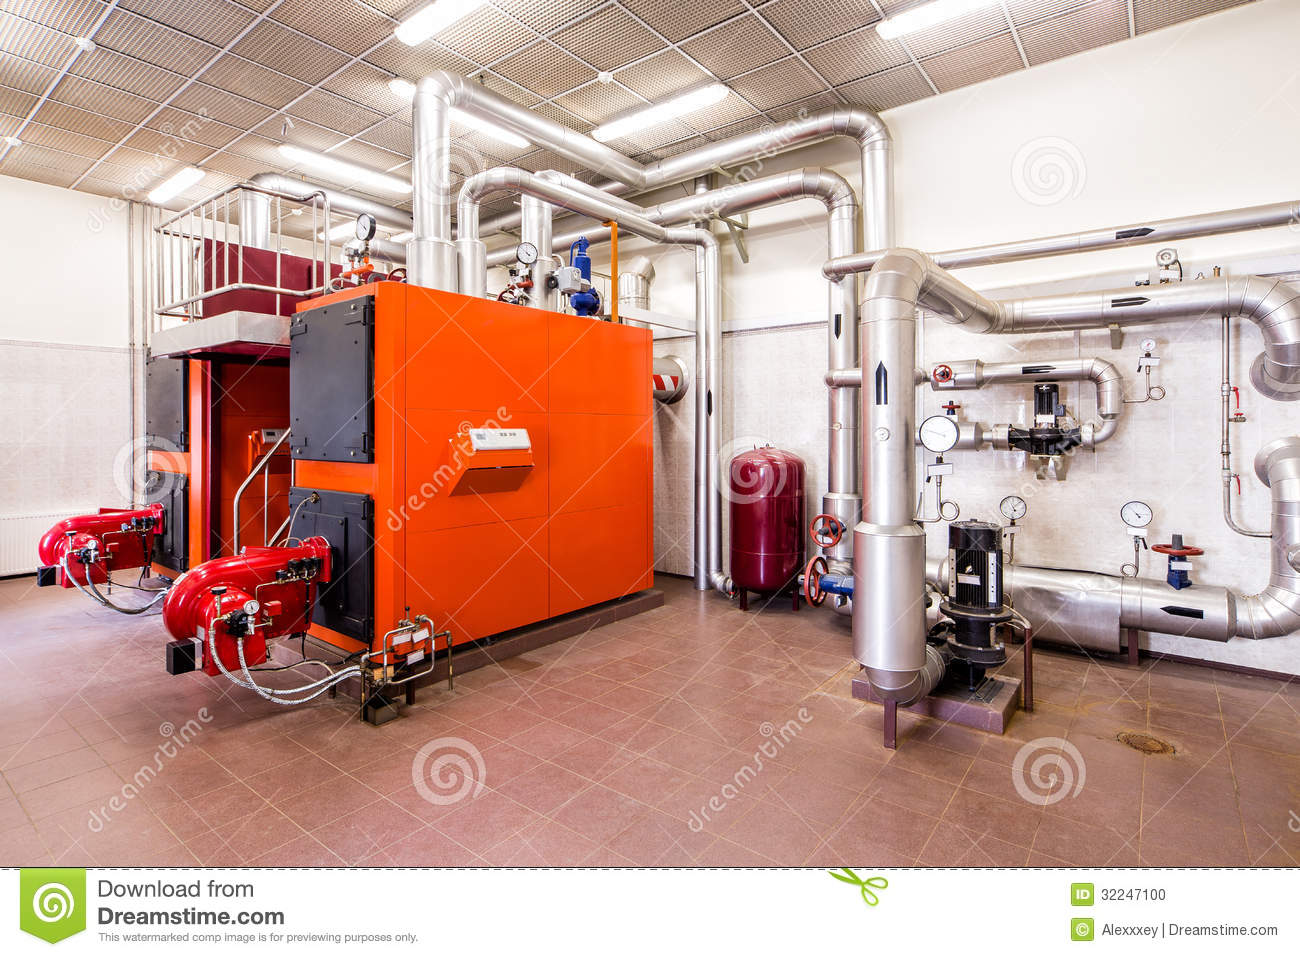 Interior Industrial Diesel Boiler Room With Boilers And